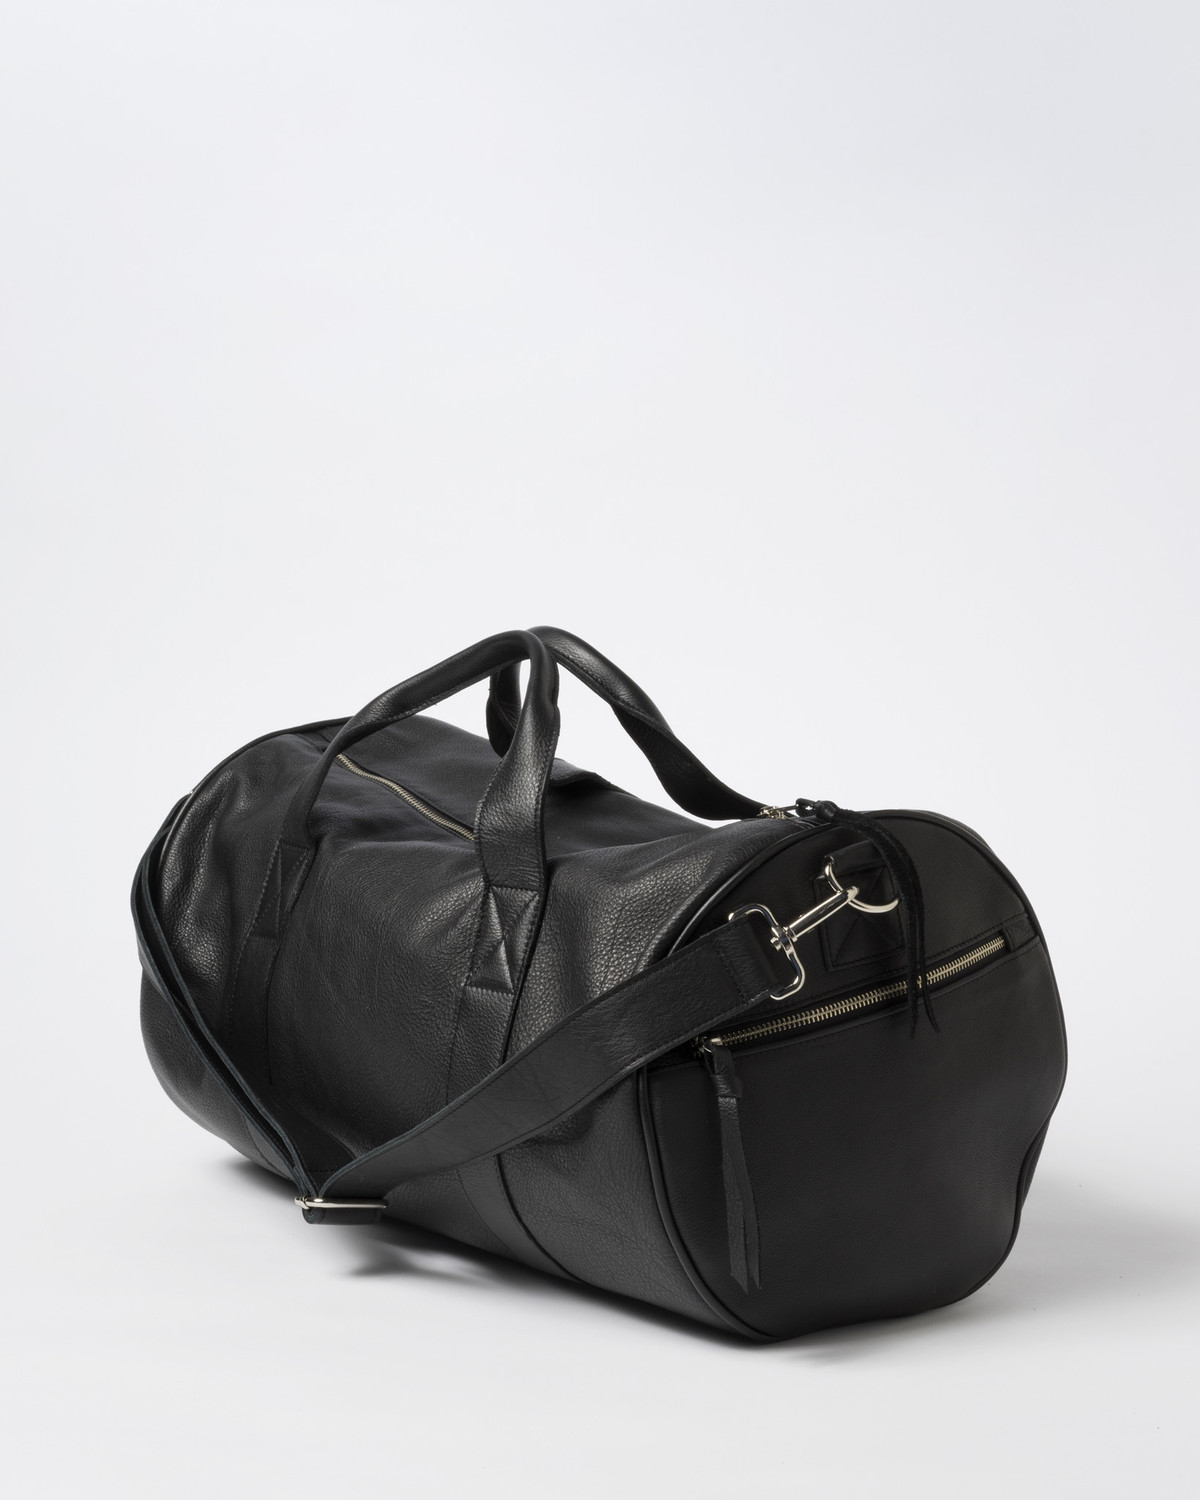 Clyde Duffel Bag in Black Leather  b6ade3804e5d4